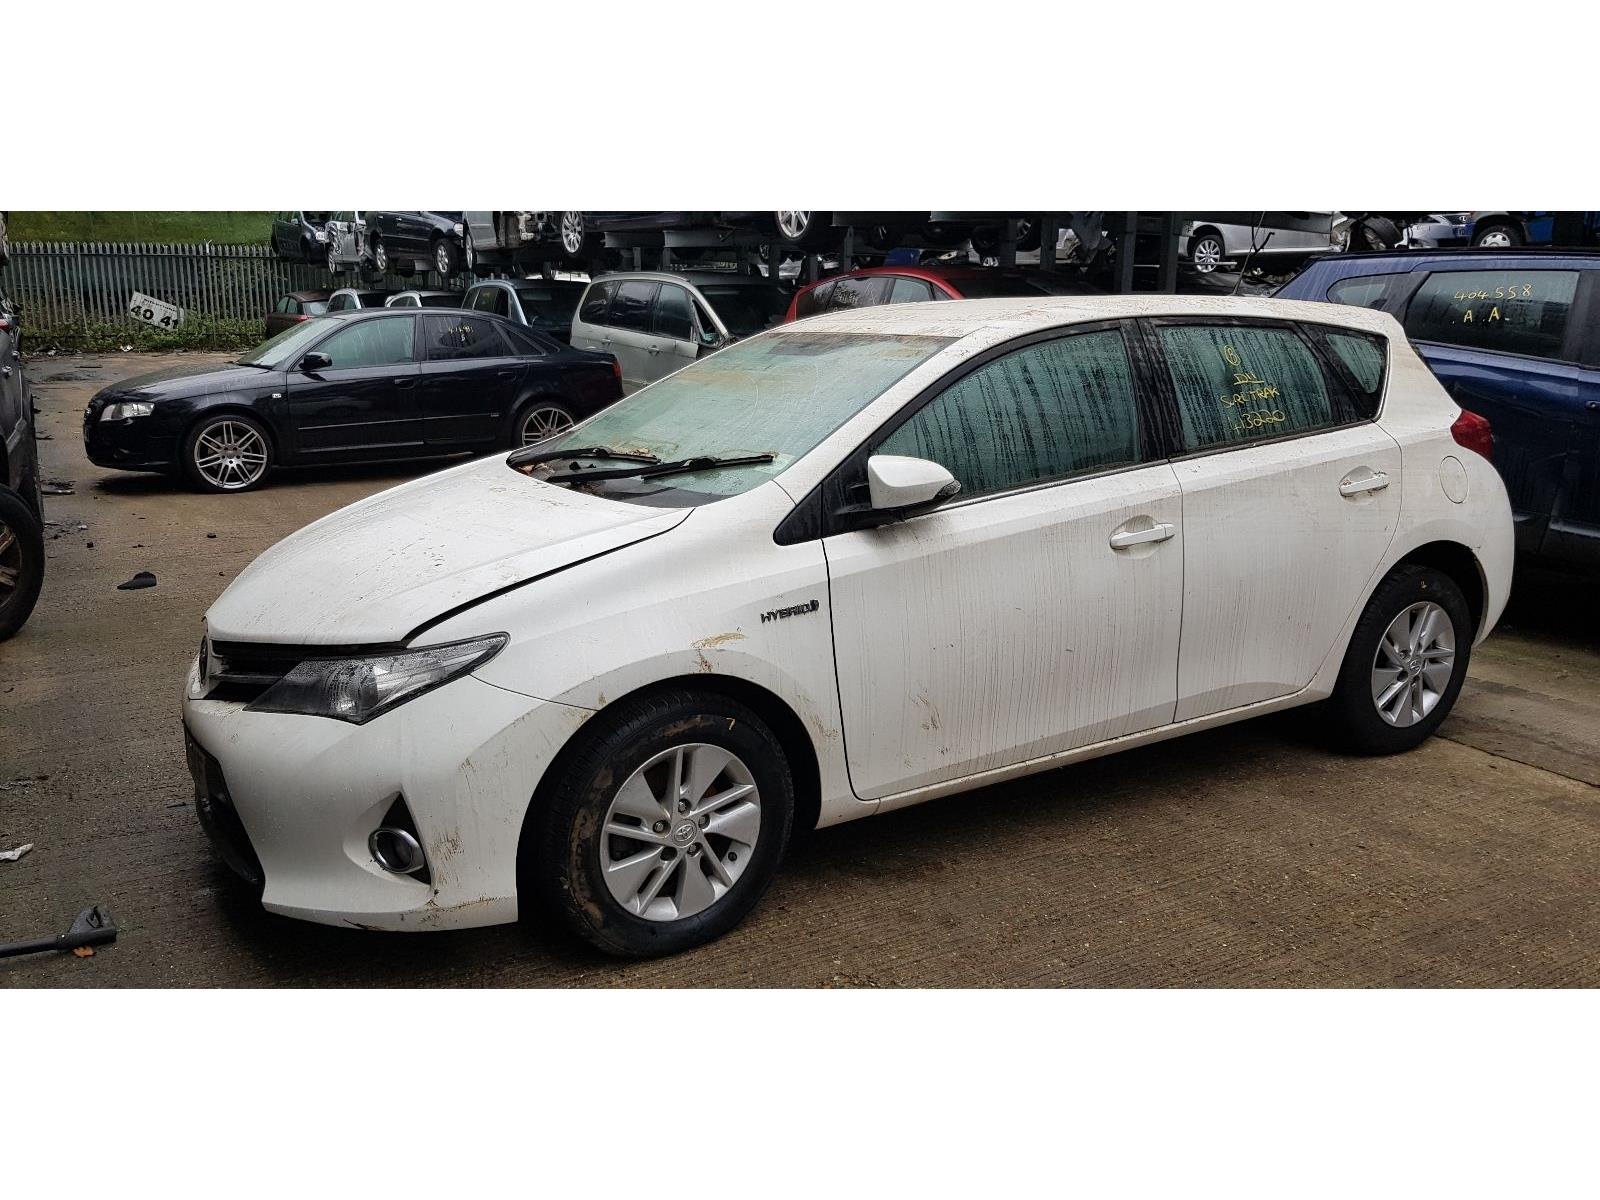 Toyota Auris Hybrid 2012 To 2015 Icon 5 Door Hatchback Scrap